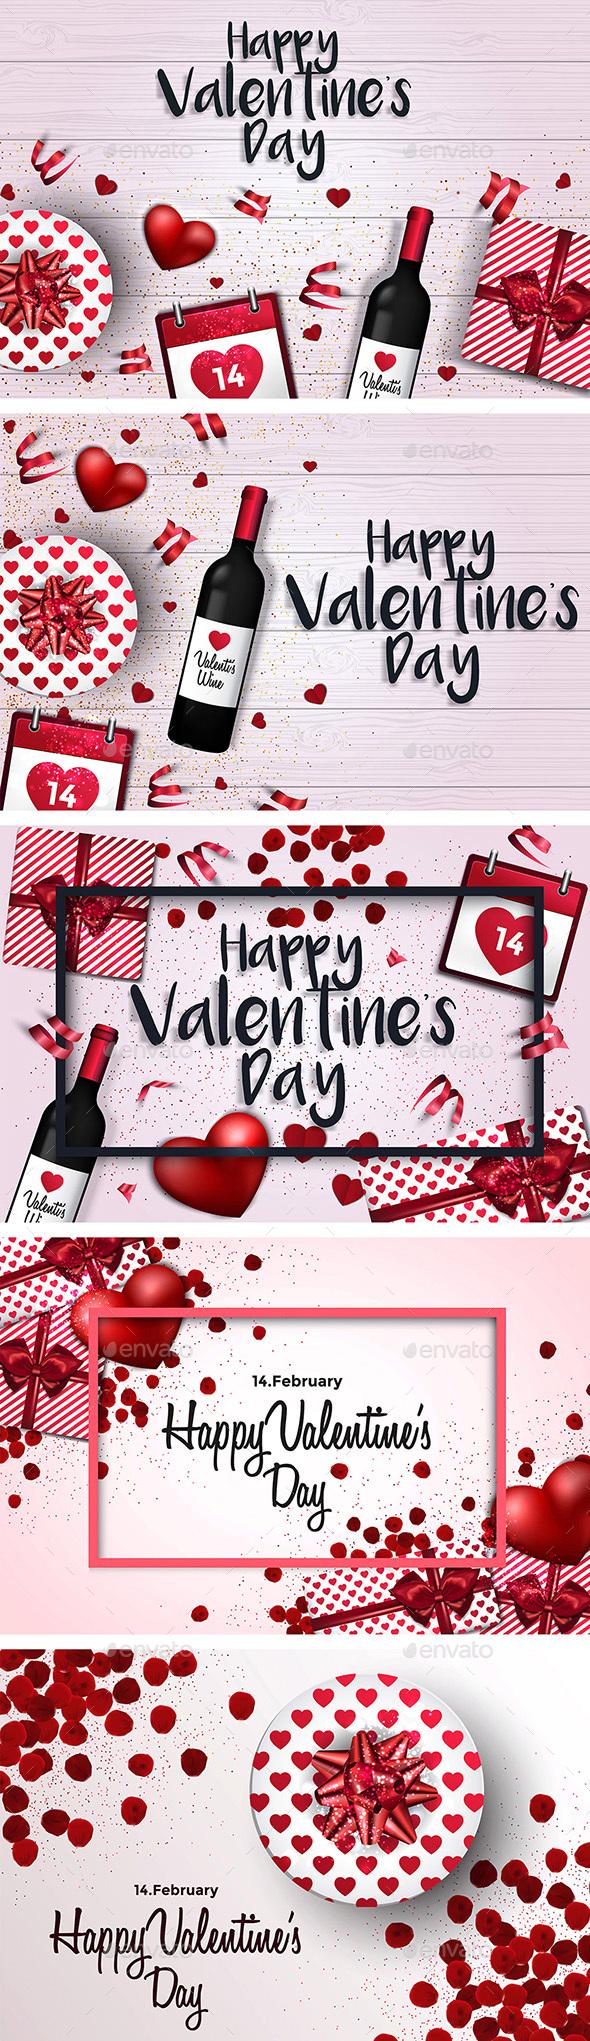 Set Of 5 Trendy Valentines Day Greeting Cards Design By Graphics4u